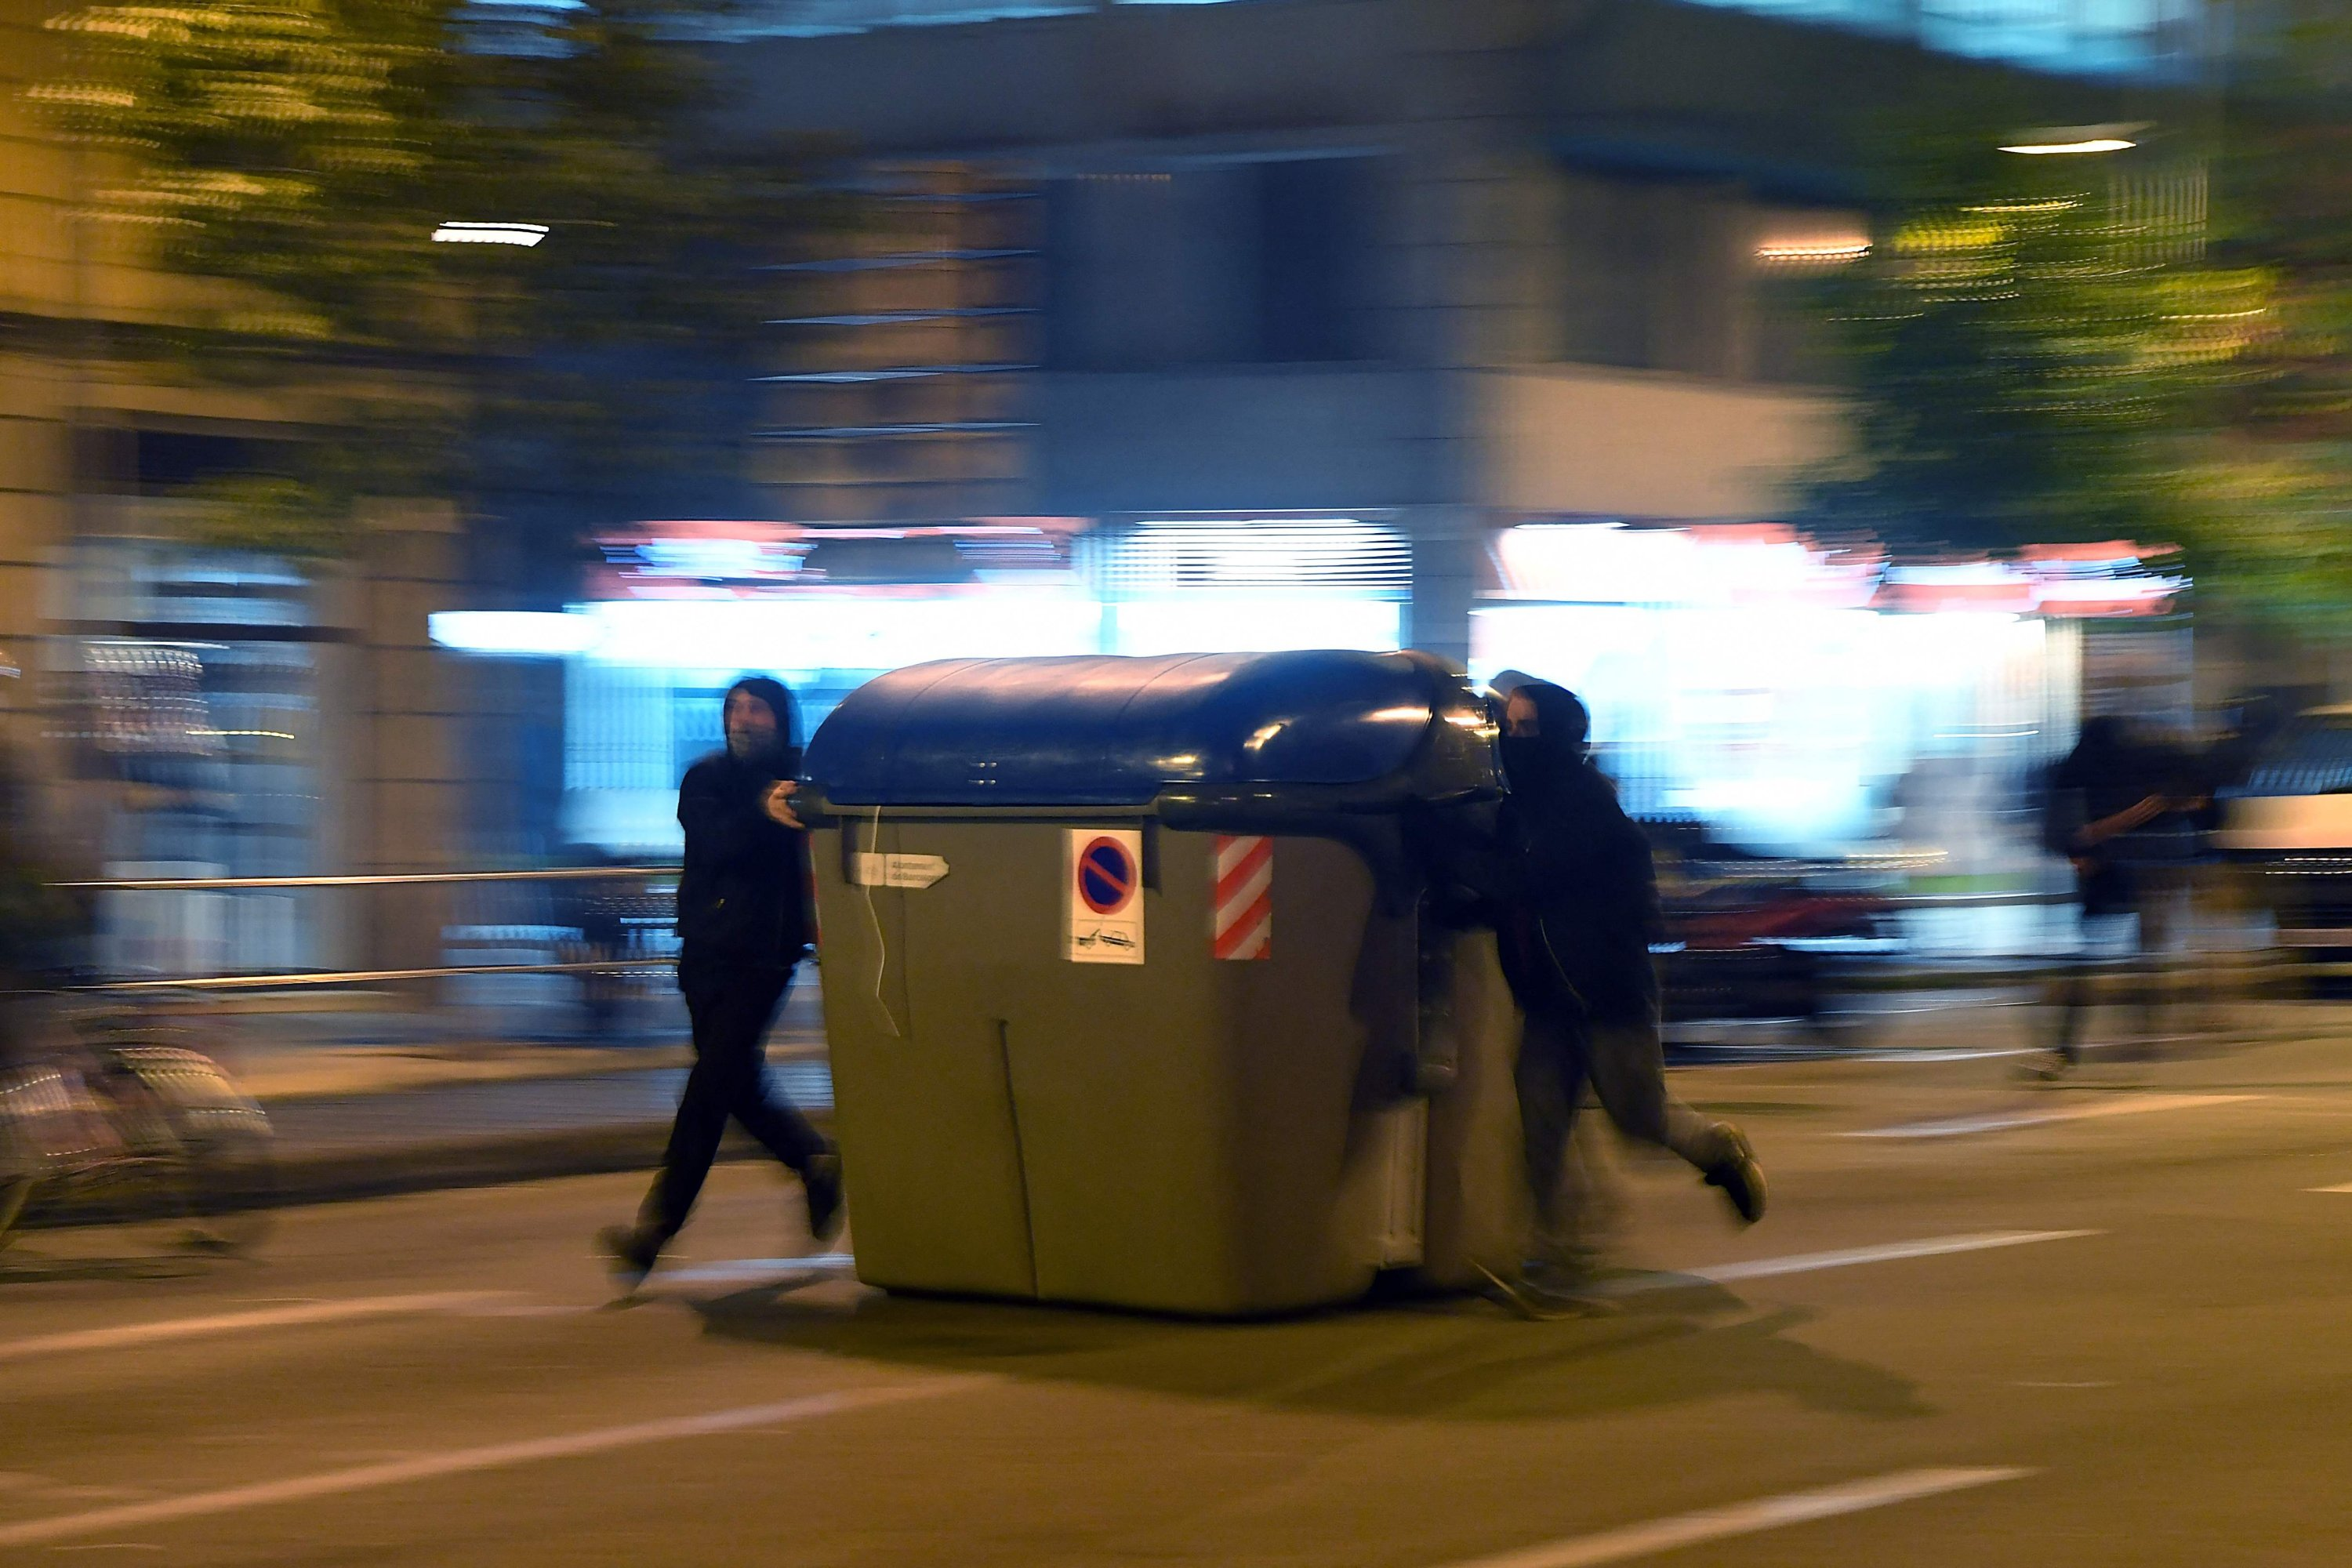 Protesters push a trash container during clashes with Catalan regional police forces Mossos d'Esquadra after a demonstration against the imprisonment of Spanish rapper Pablo Hasel in Barcelona on Feb. 19, 2021. (AFP Photo)